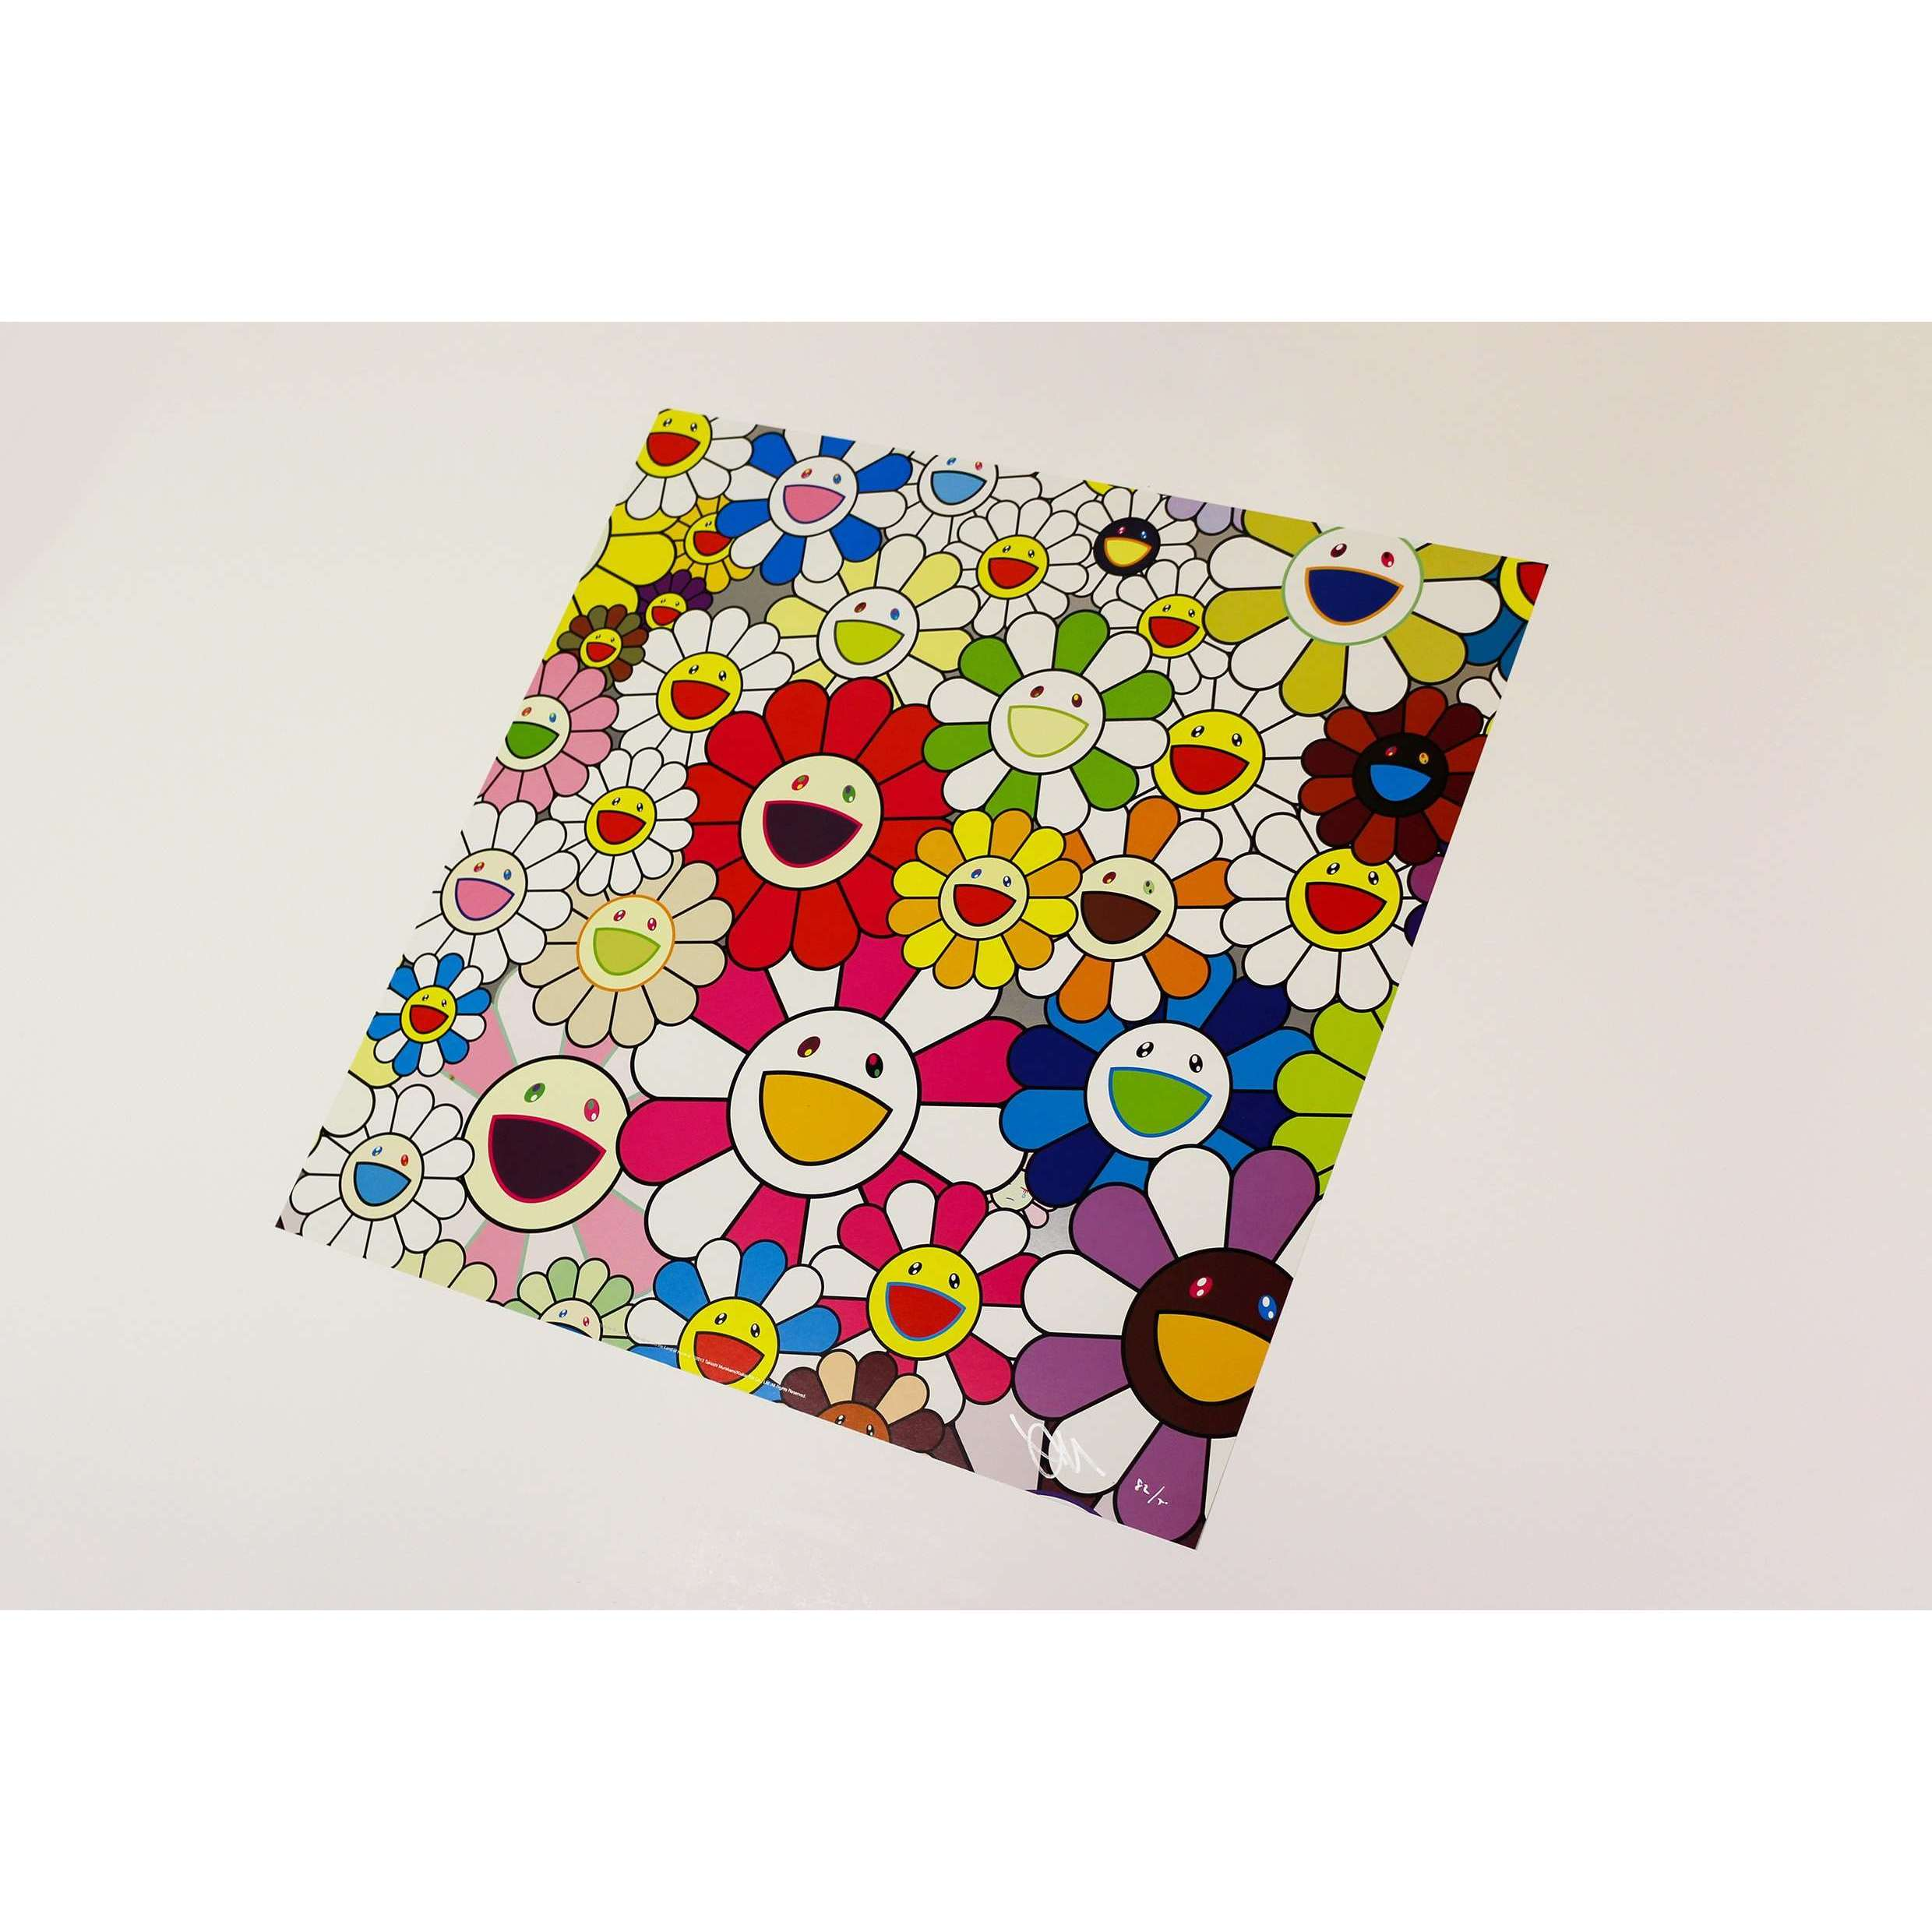 Takashi Murakami, Flowers Blooming in this World and the Land of Nirvana (1), 2013 | Lougher Contemporary